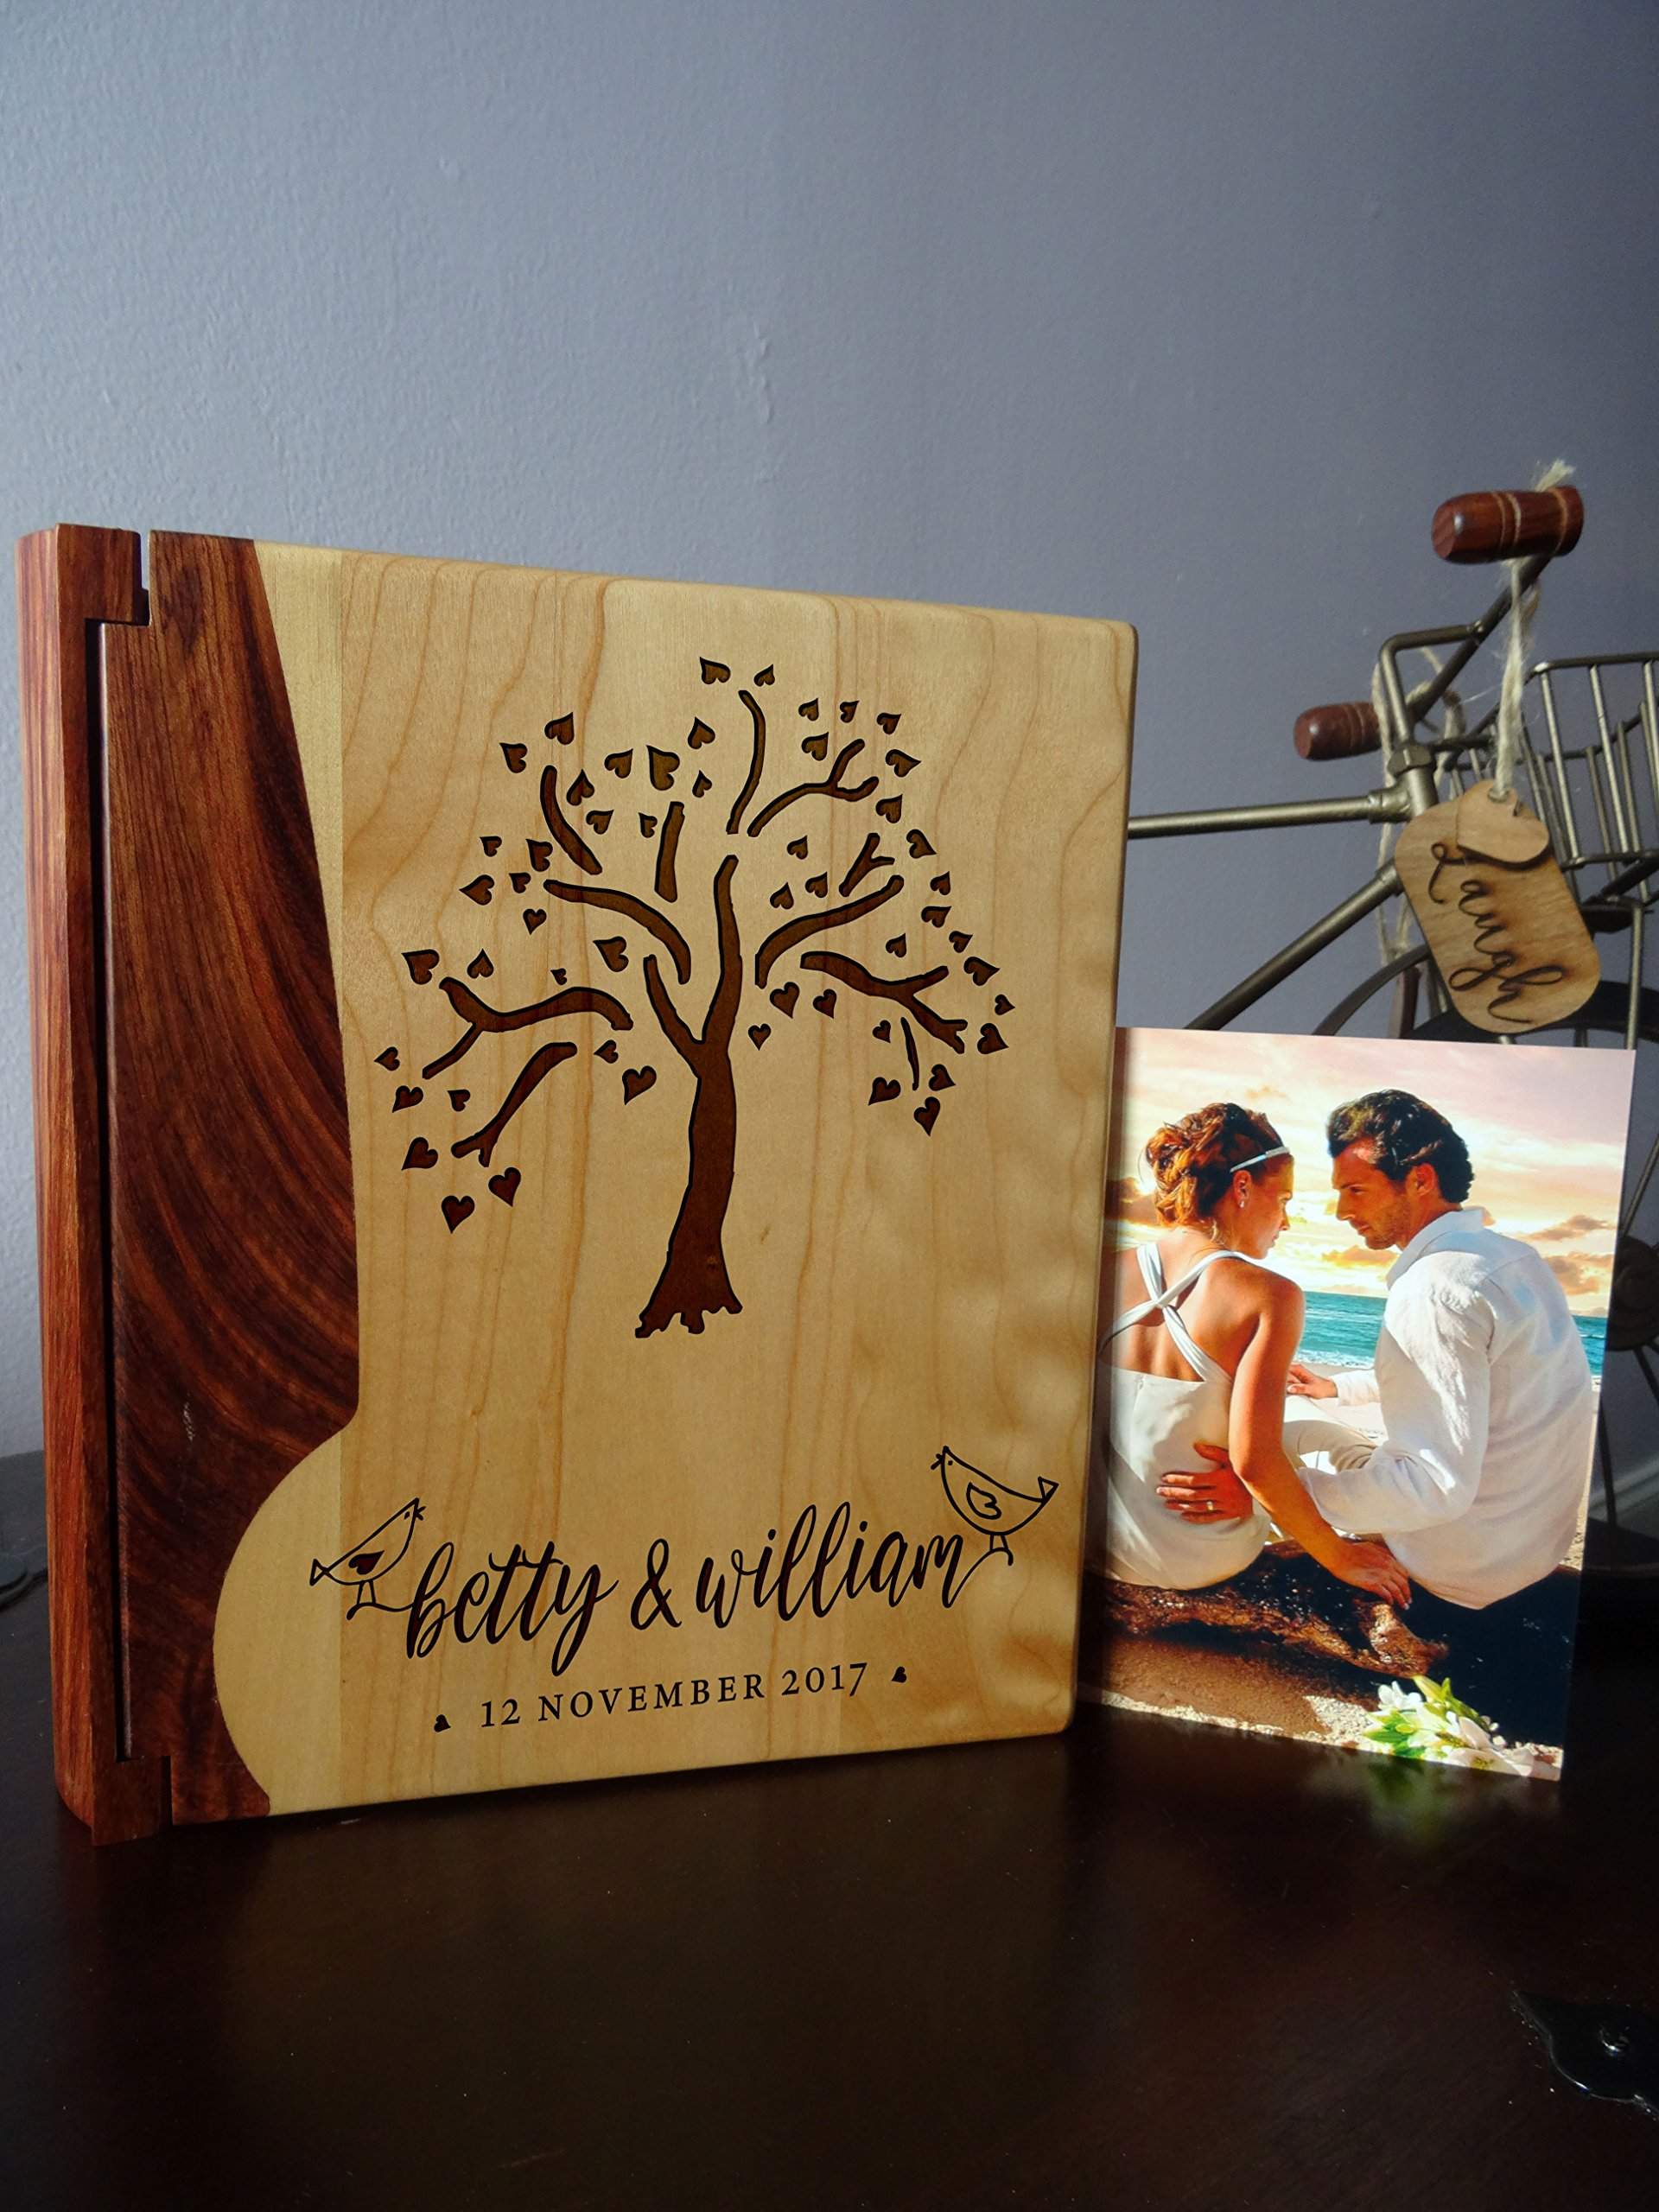 Personalized Wood Cover Photo Album, Custom Engraved Wedding Album, Style 128 (Maple & Walnut Cover)